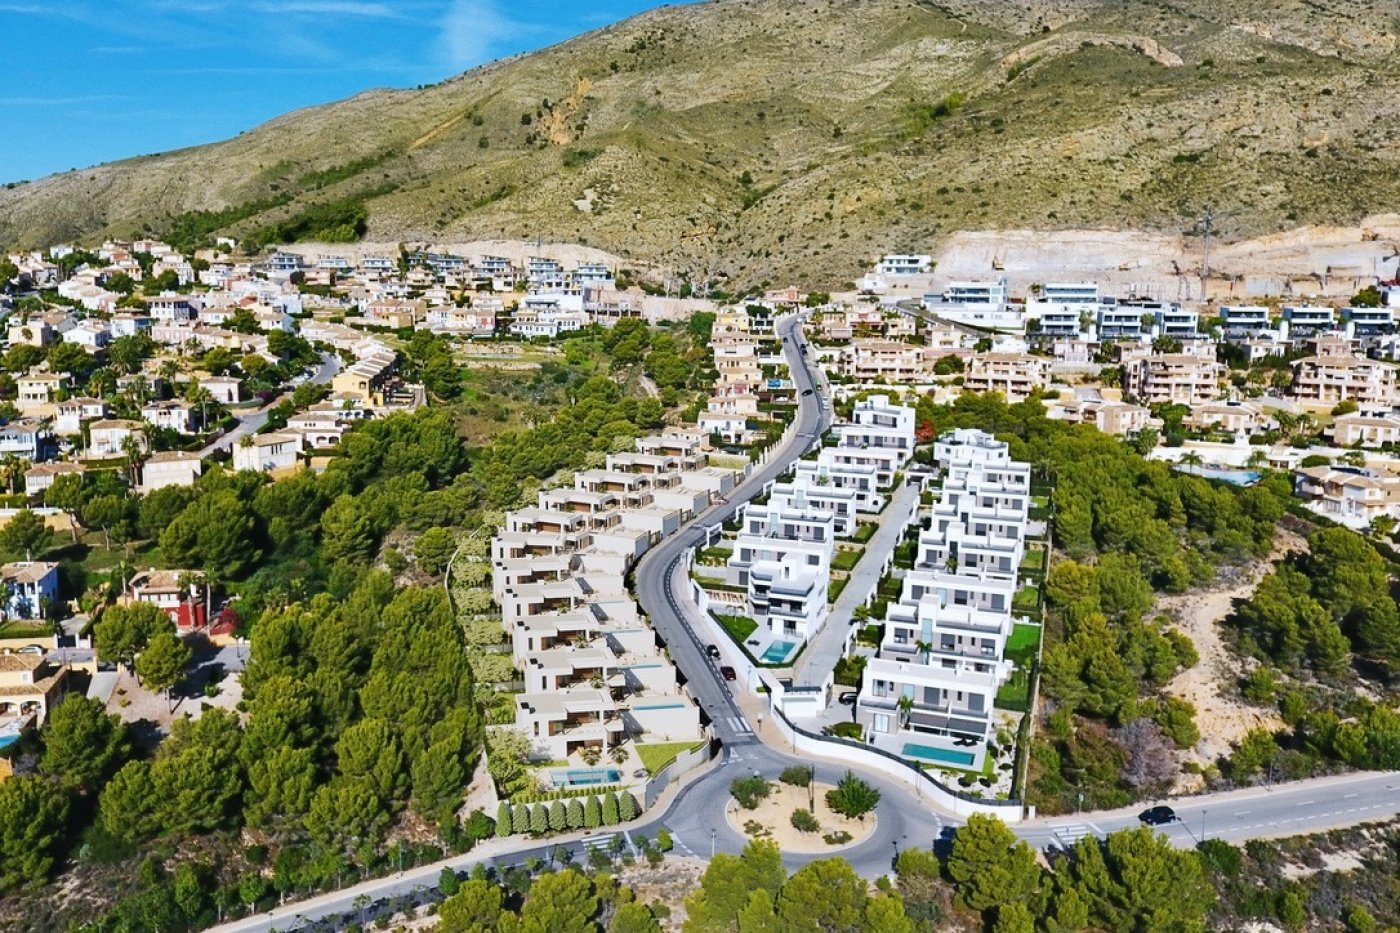 Gallery Image 8 of Luxury villa in Finestrat fantastic views over Benidorm, southwest facing - own pool, large basement